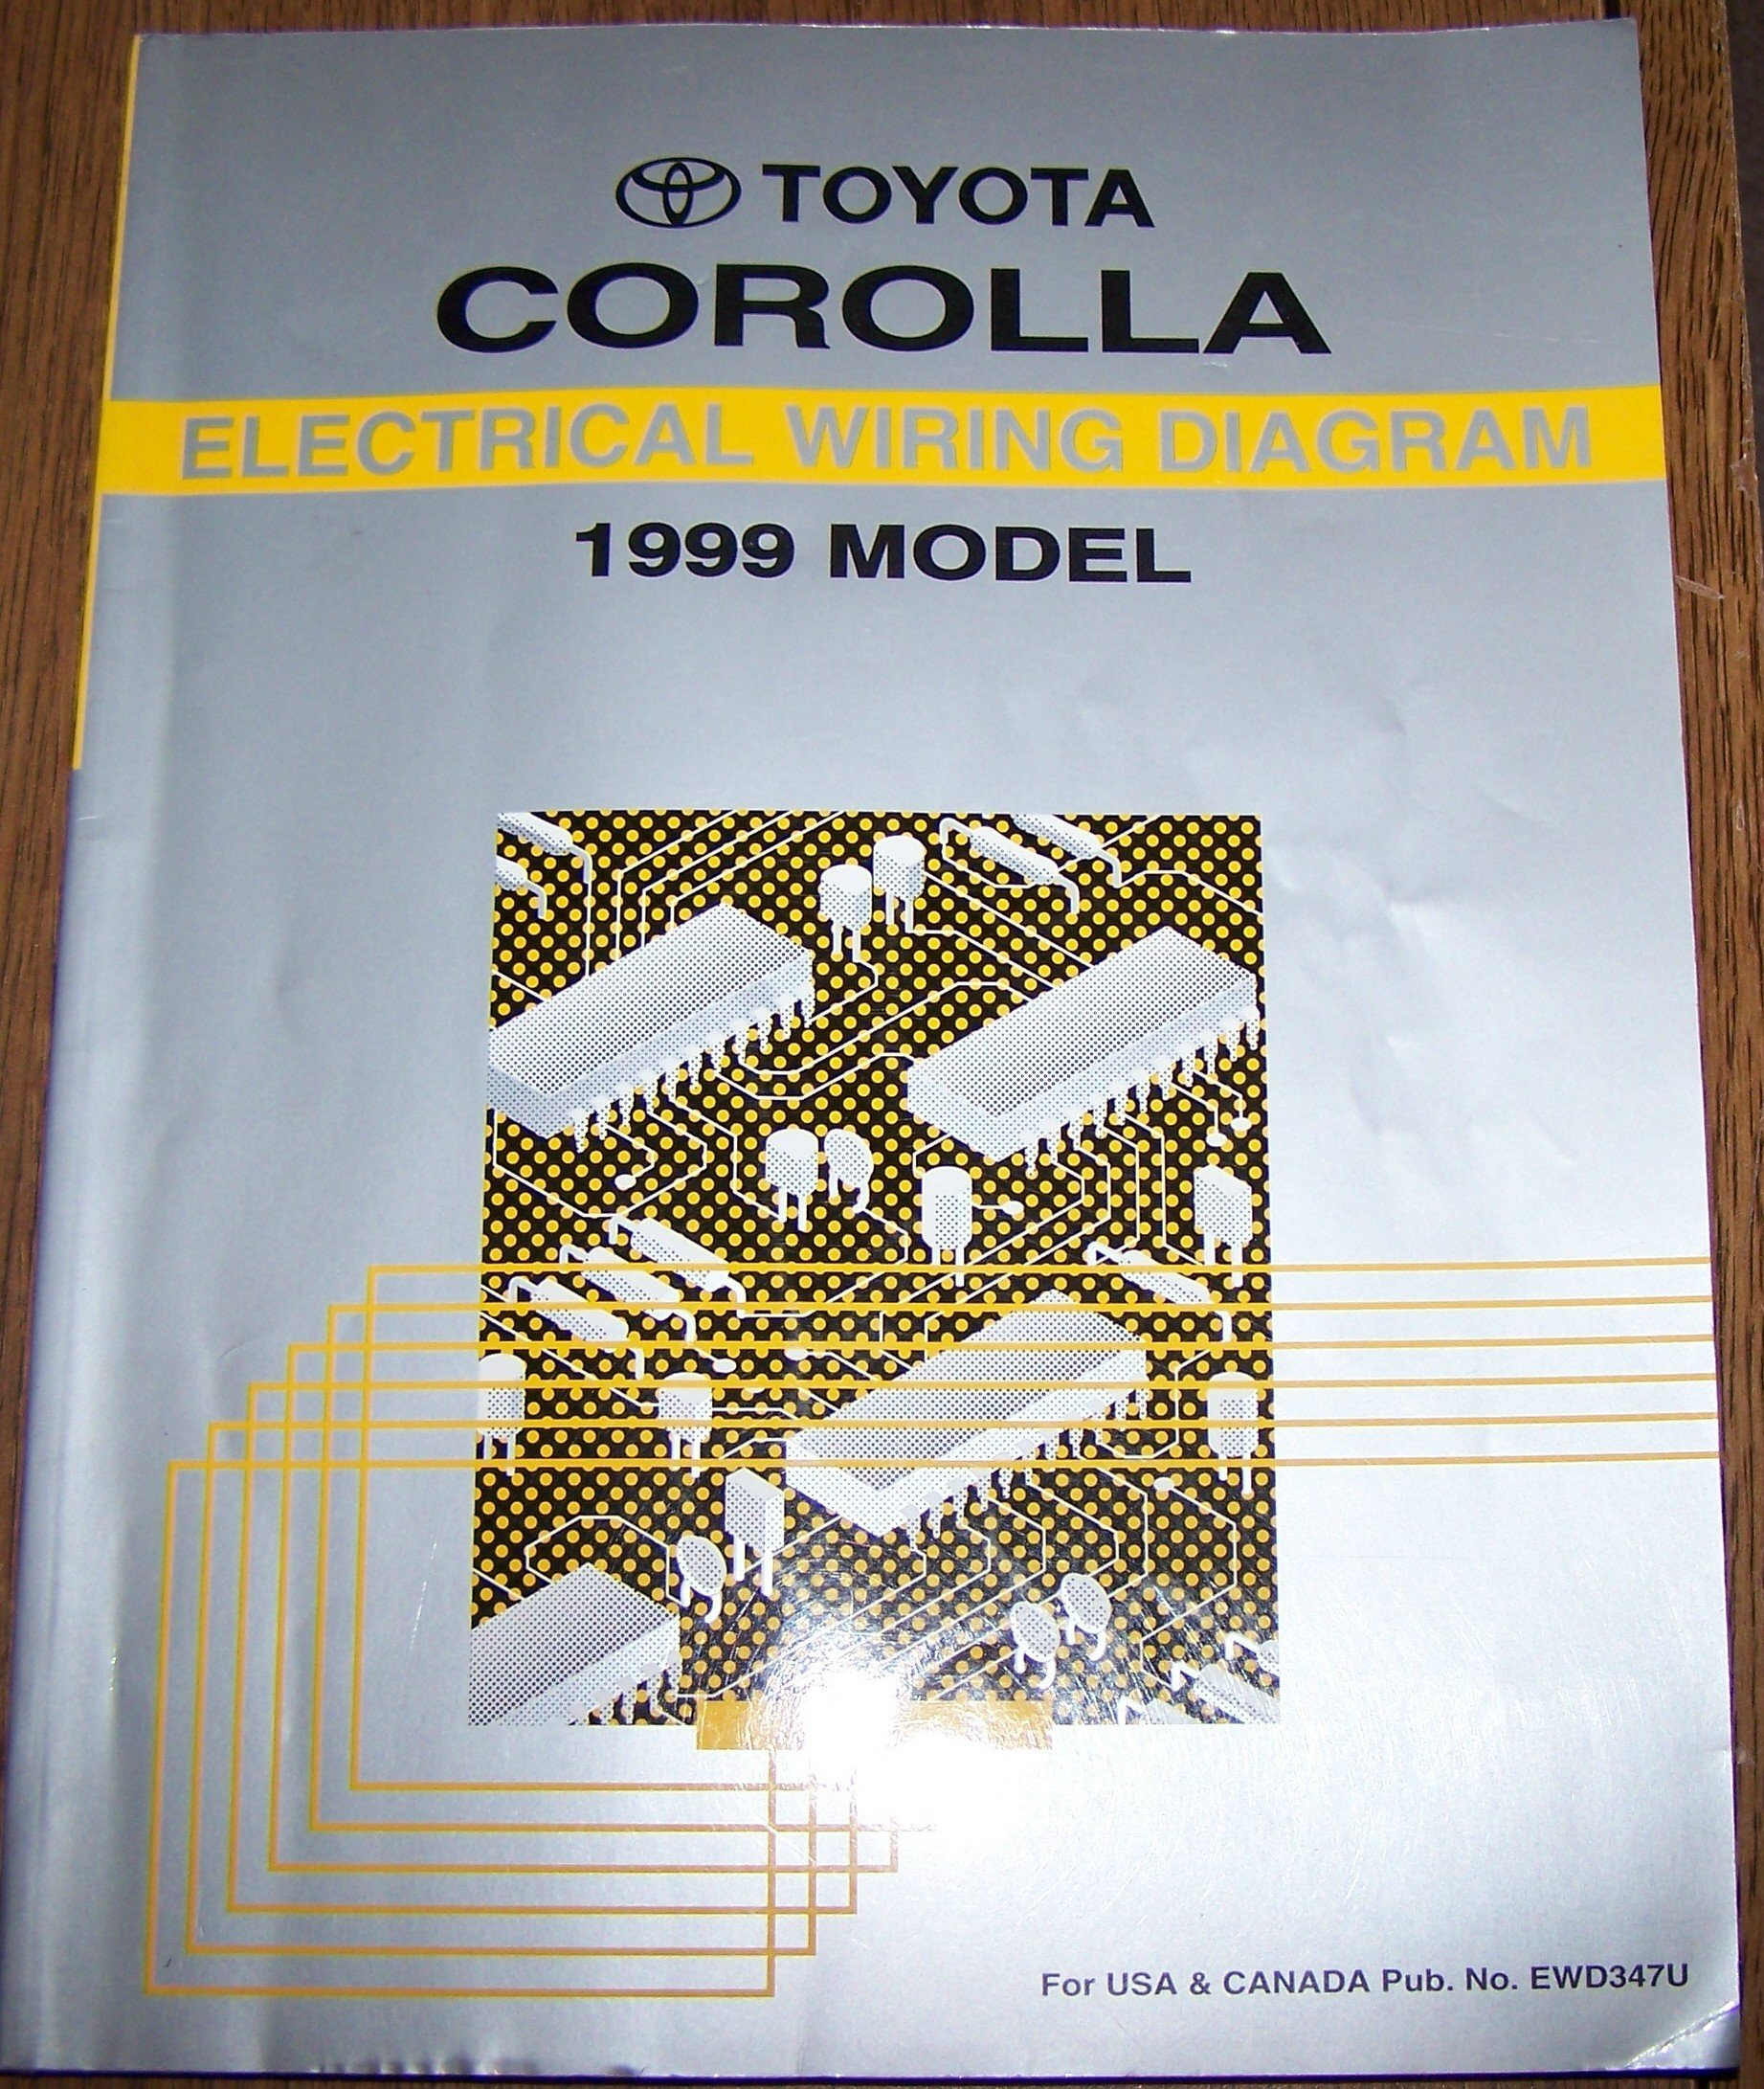 1999 Toyota Corolla Electrical Wiring Diagram Repair Manual For Motor Corp Books